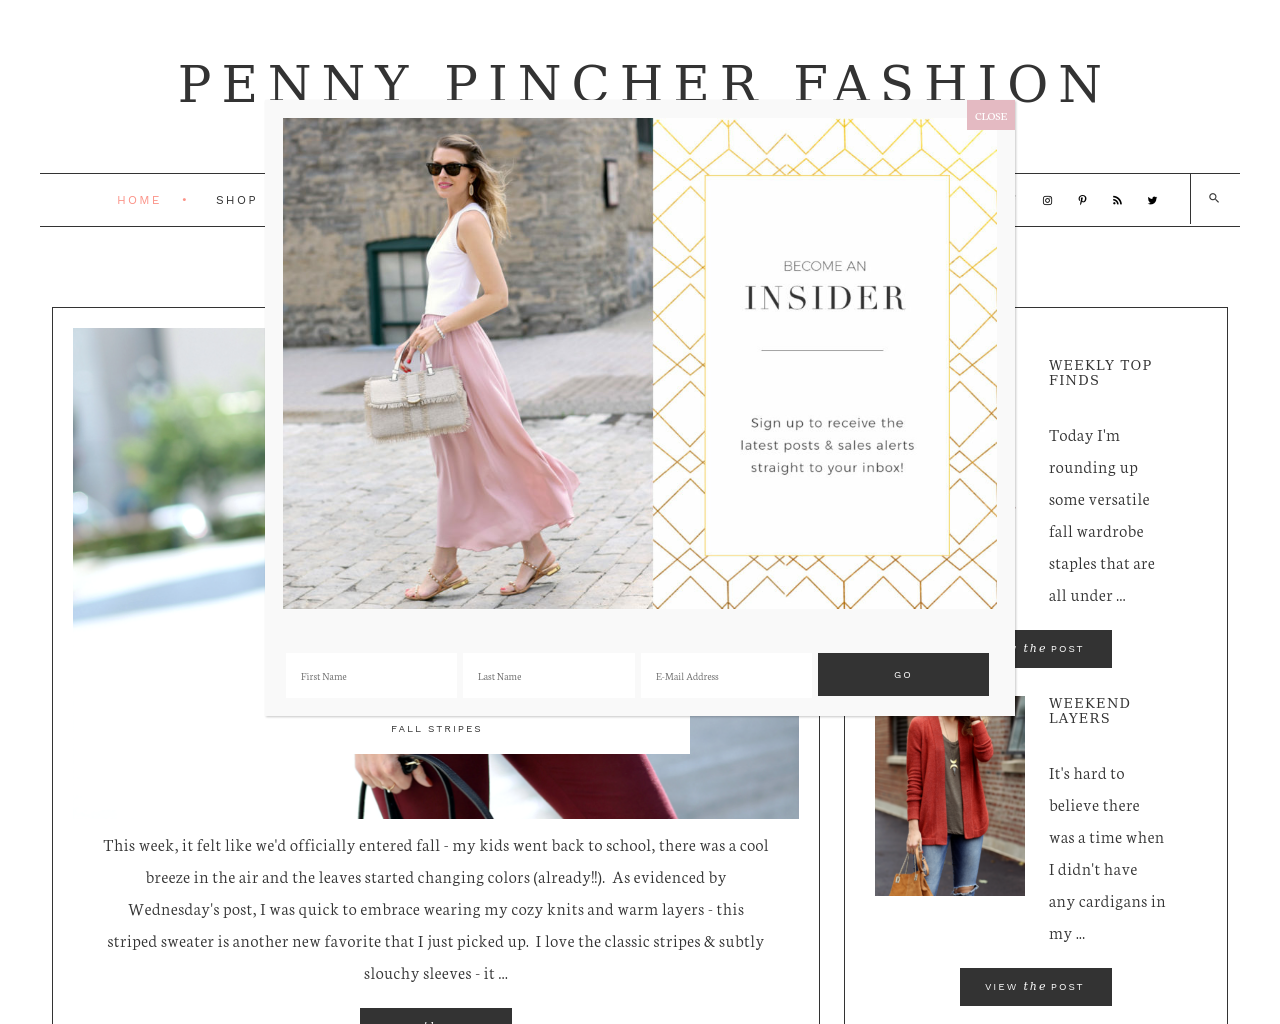 PENNY-PINCHER-FASHION-Advertising-Reviews-Pricing